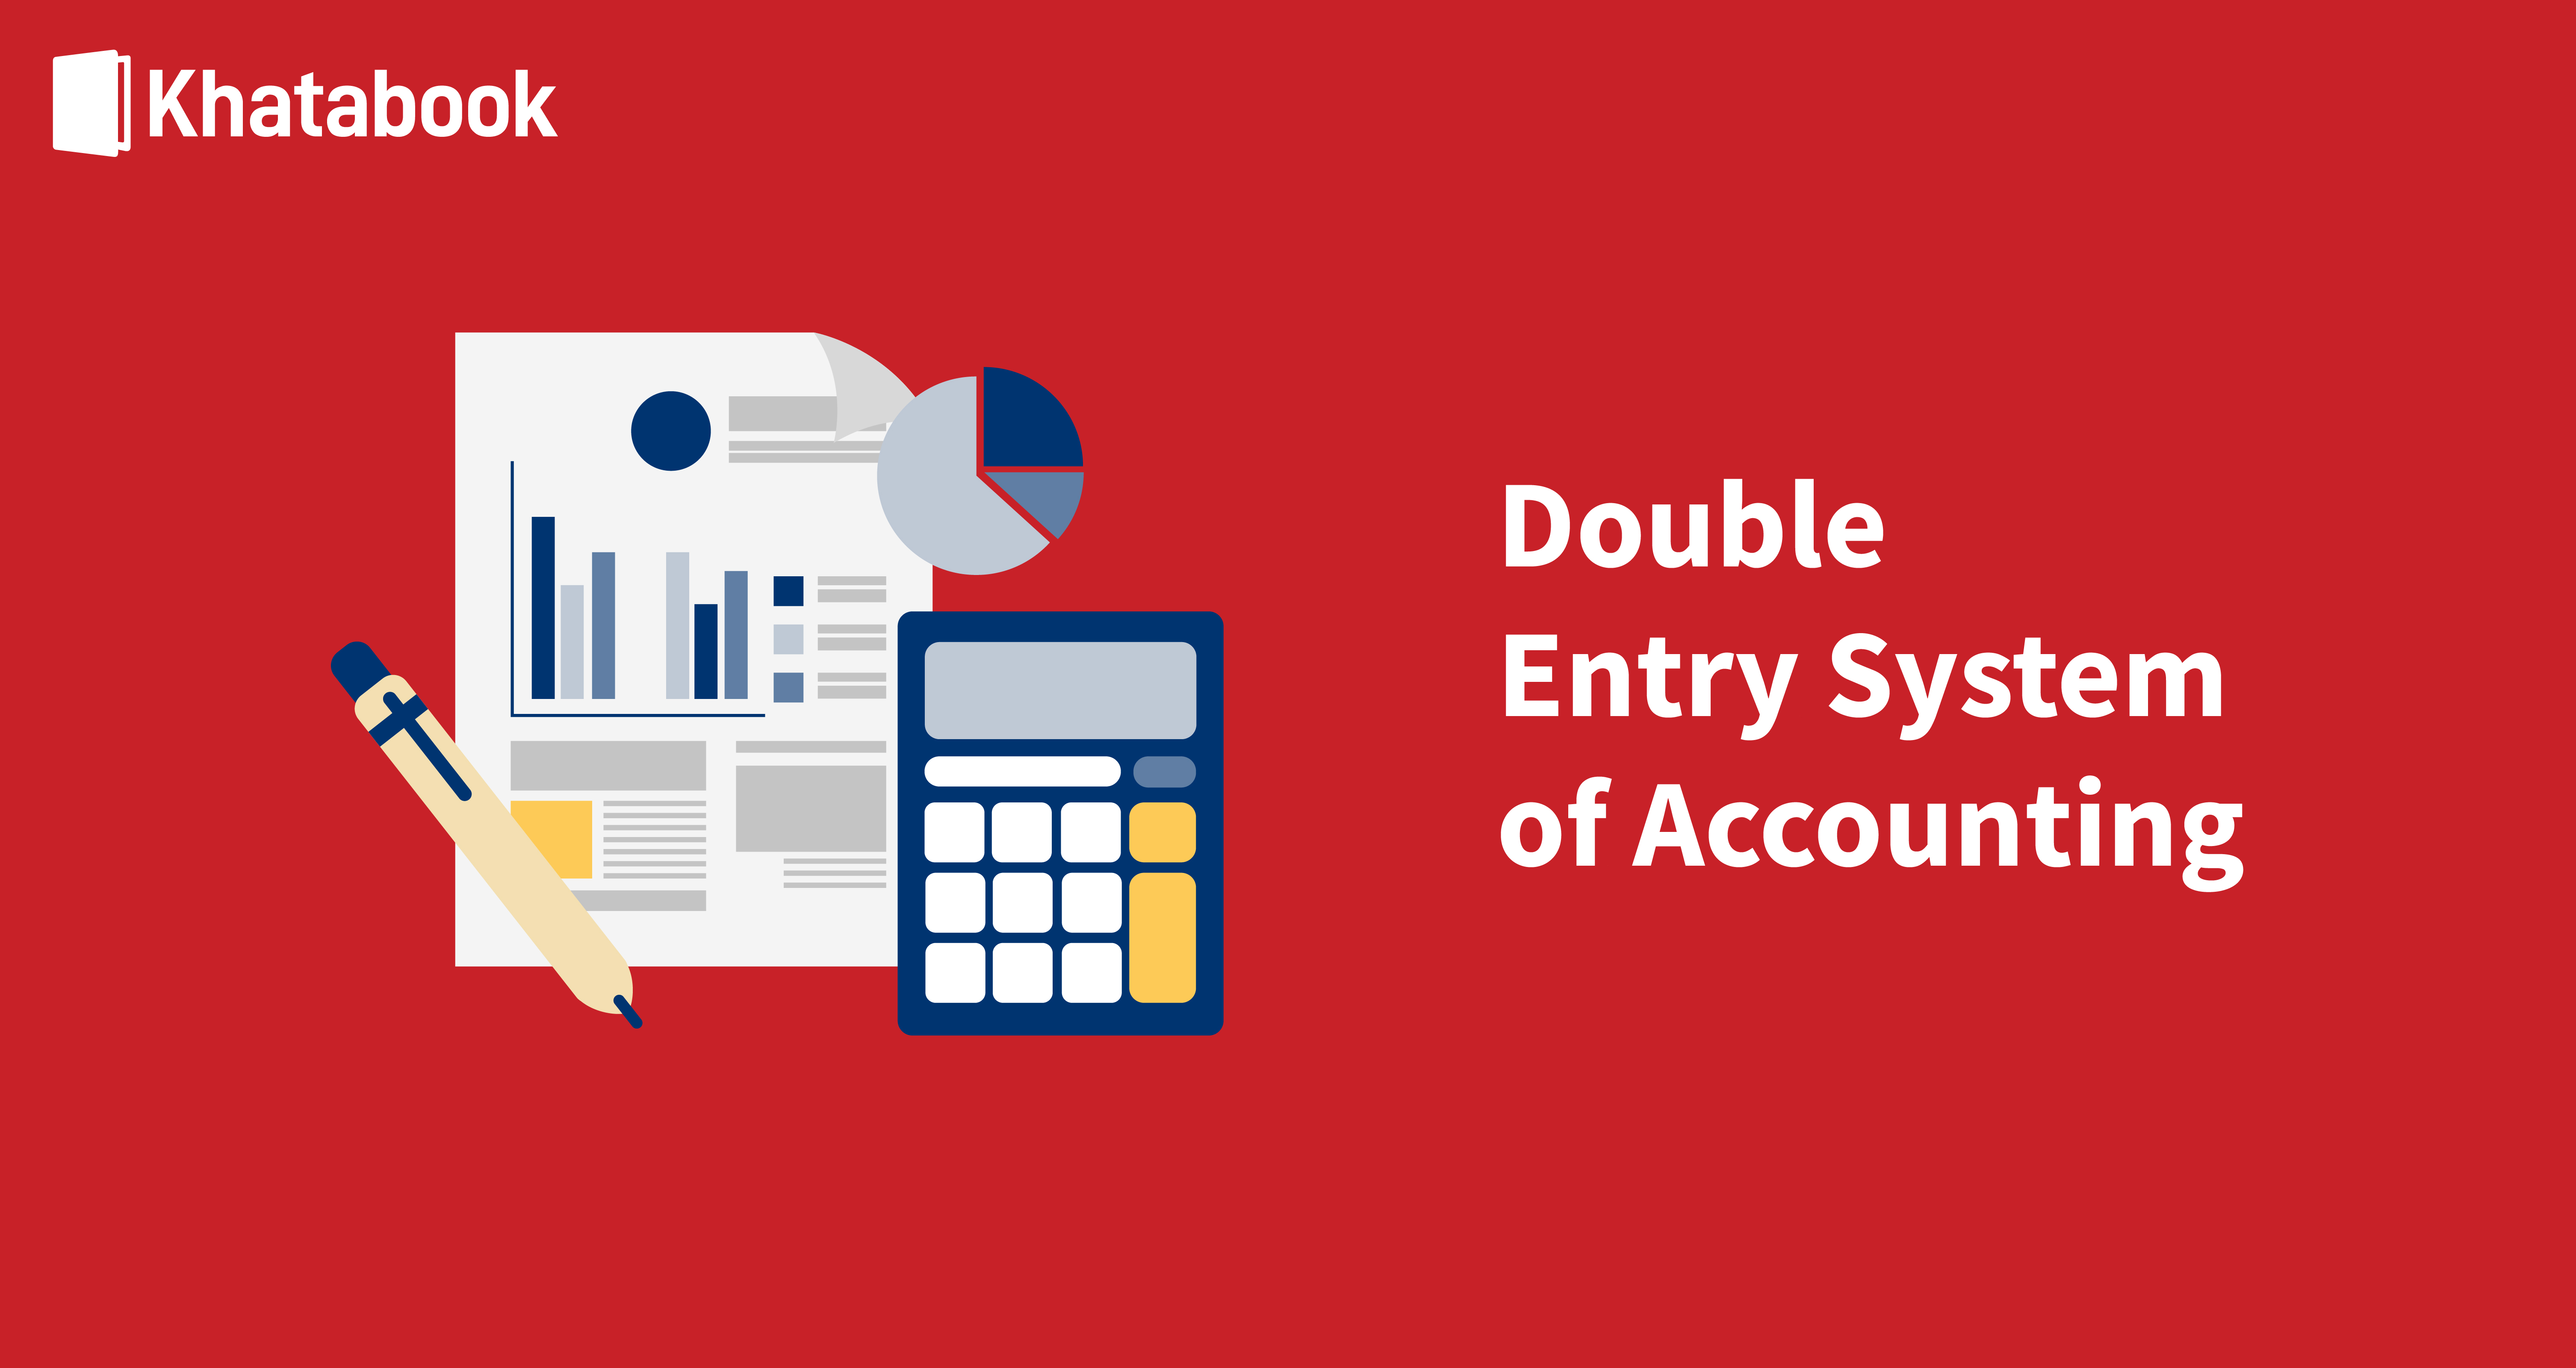 What is Double Entry System of Accounting